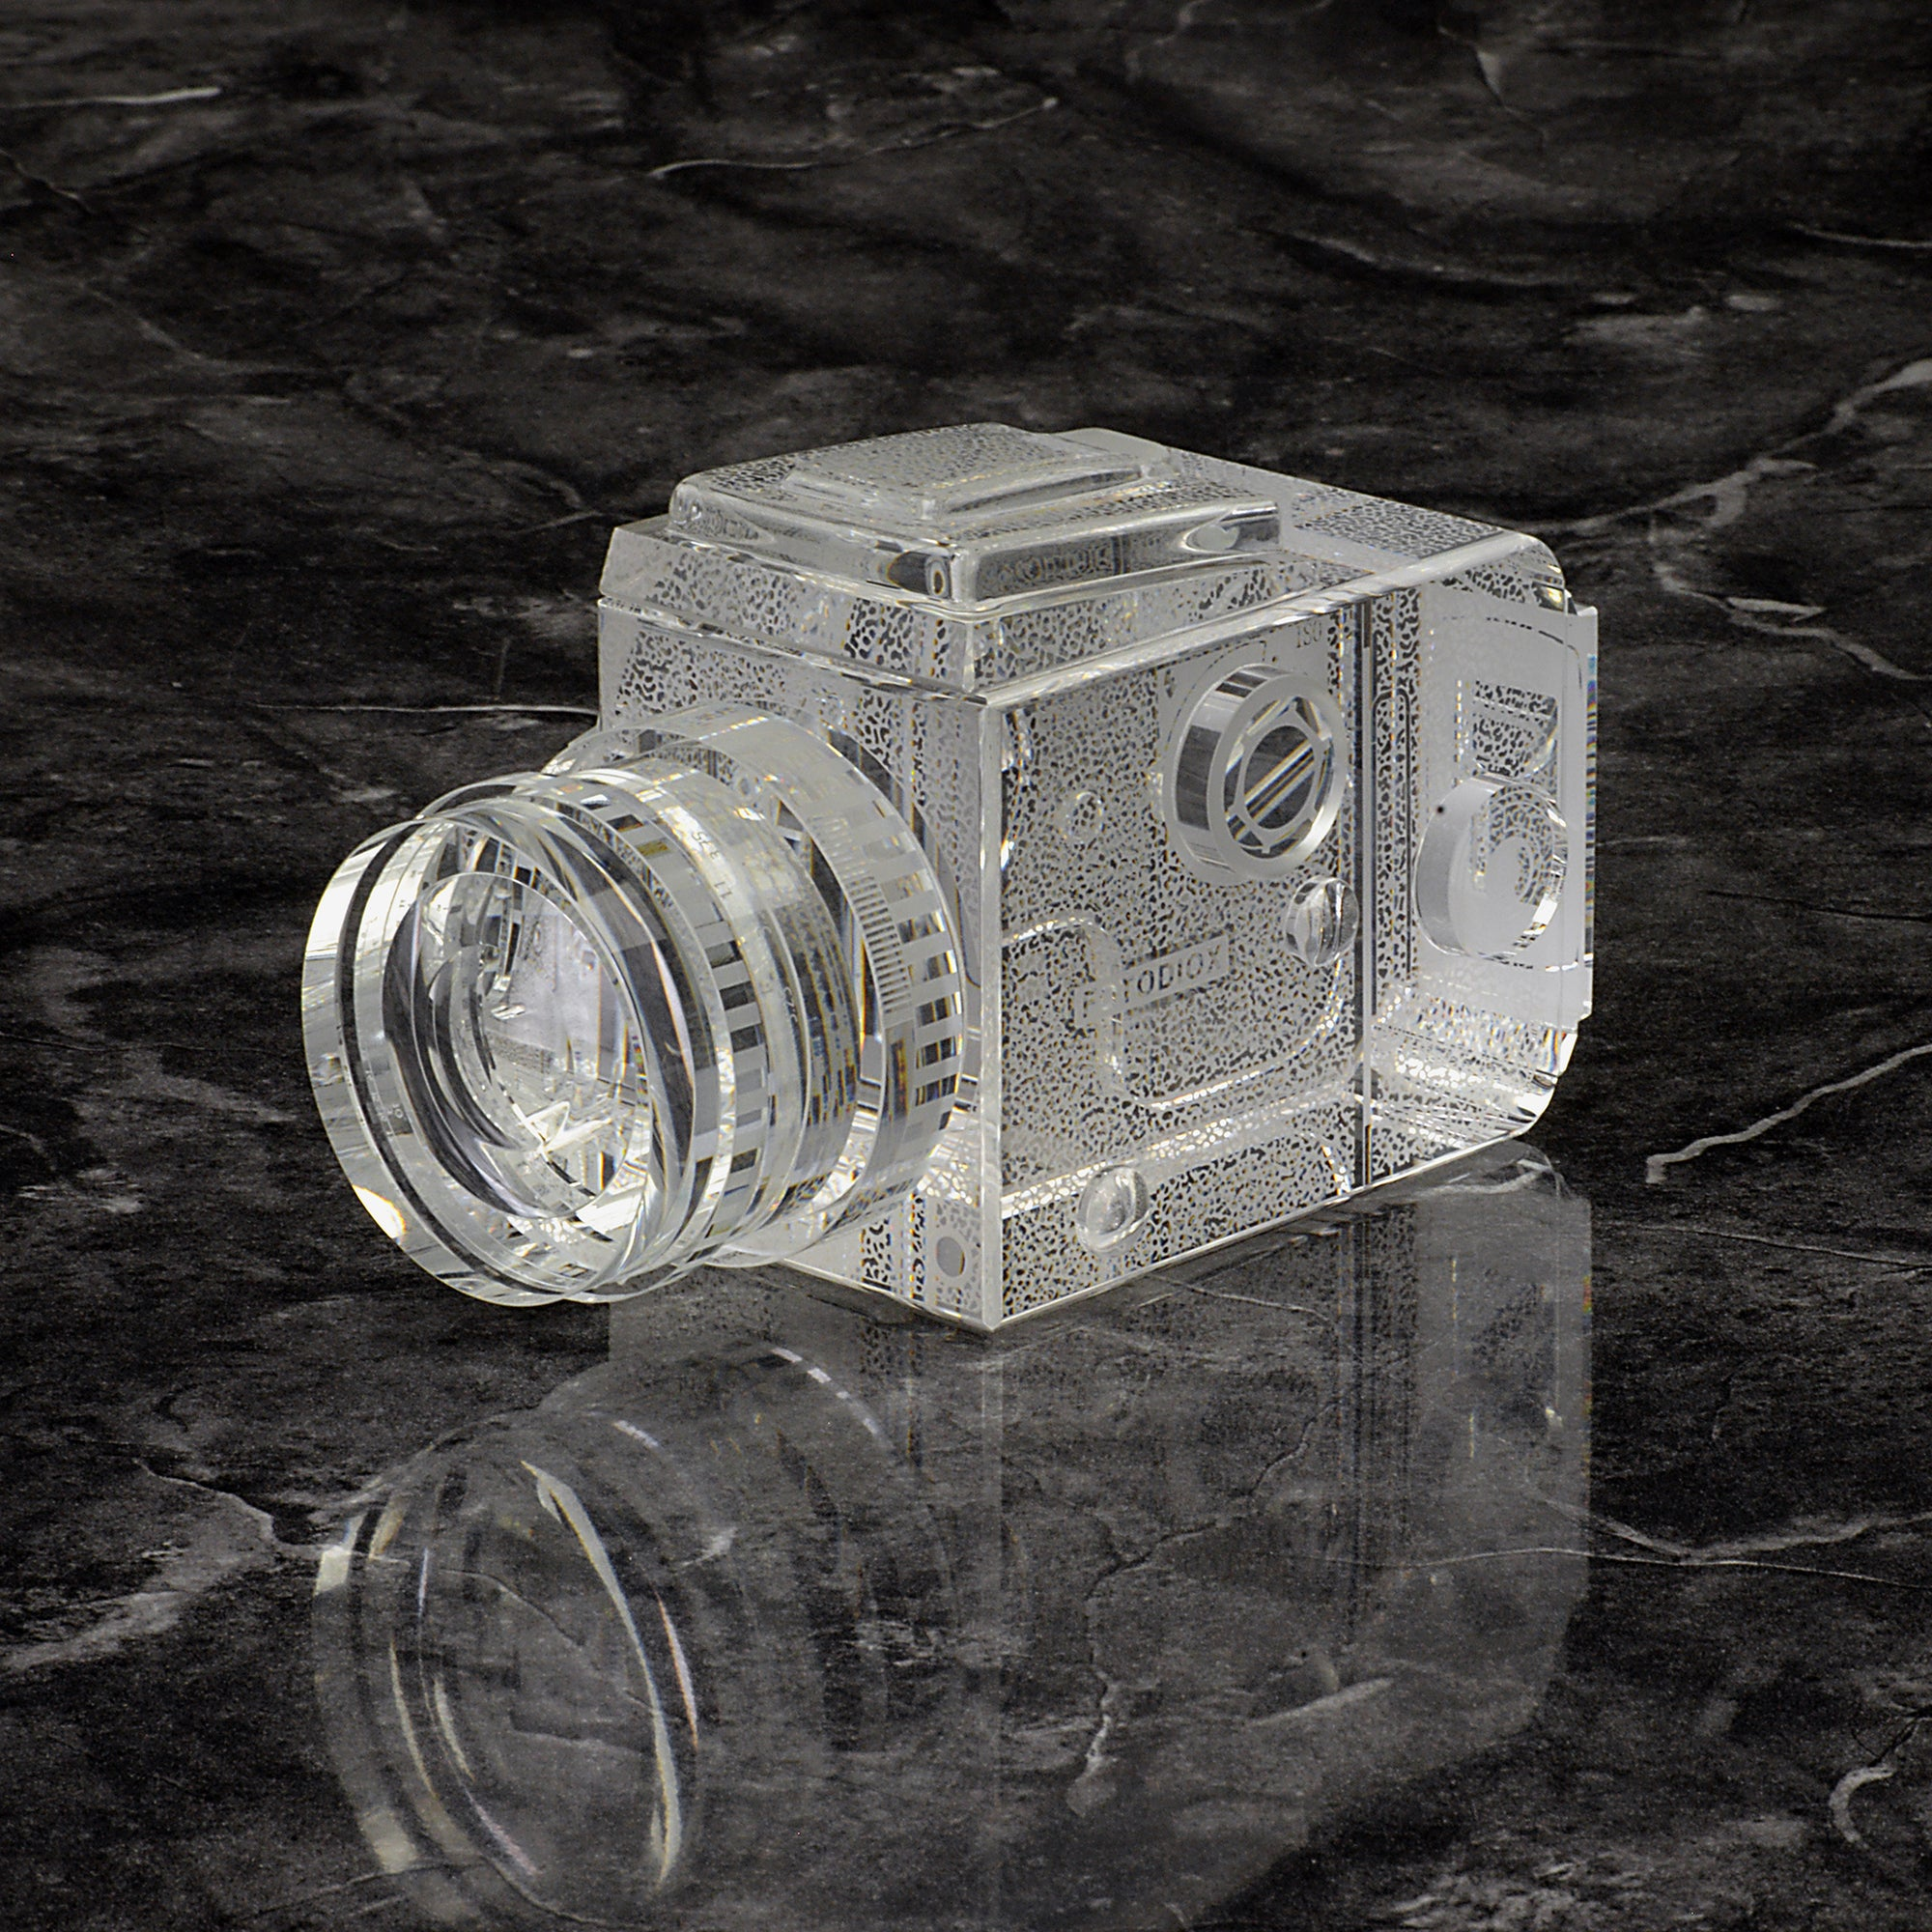 Crystal Glass Replica Hasselblad Camera